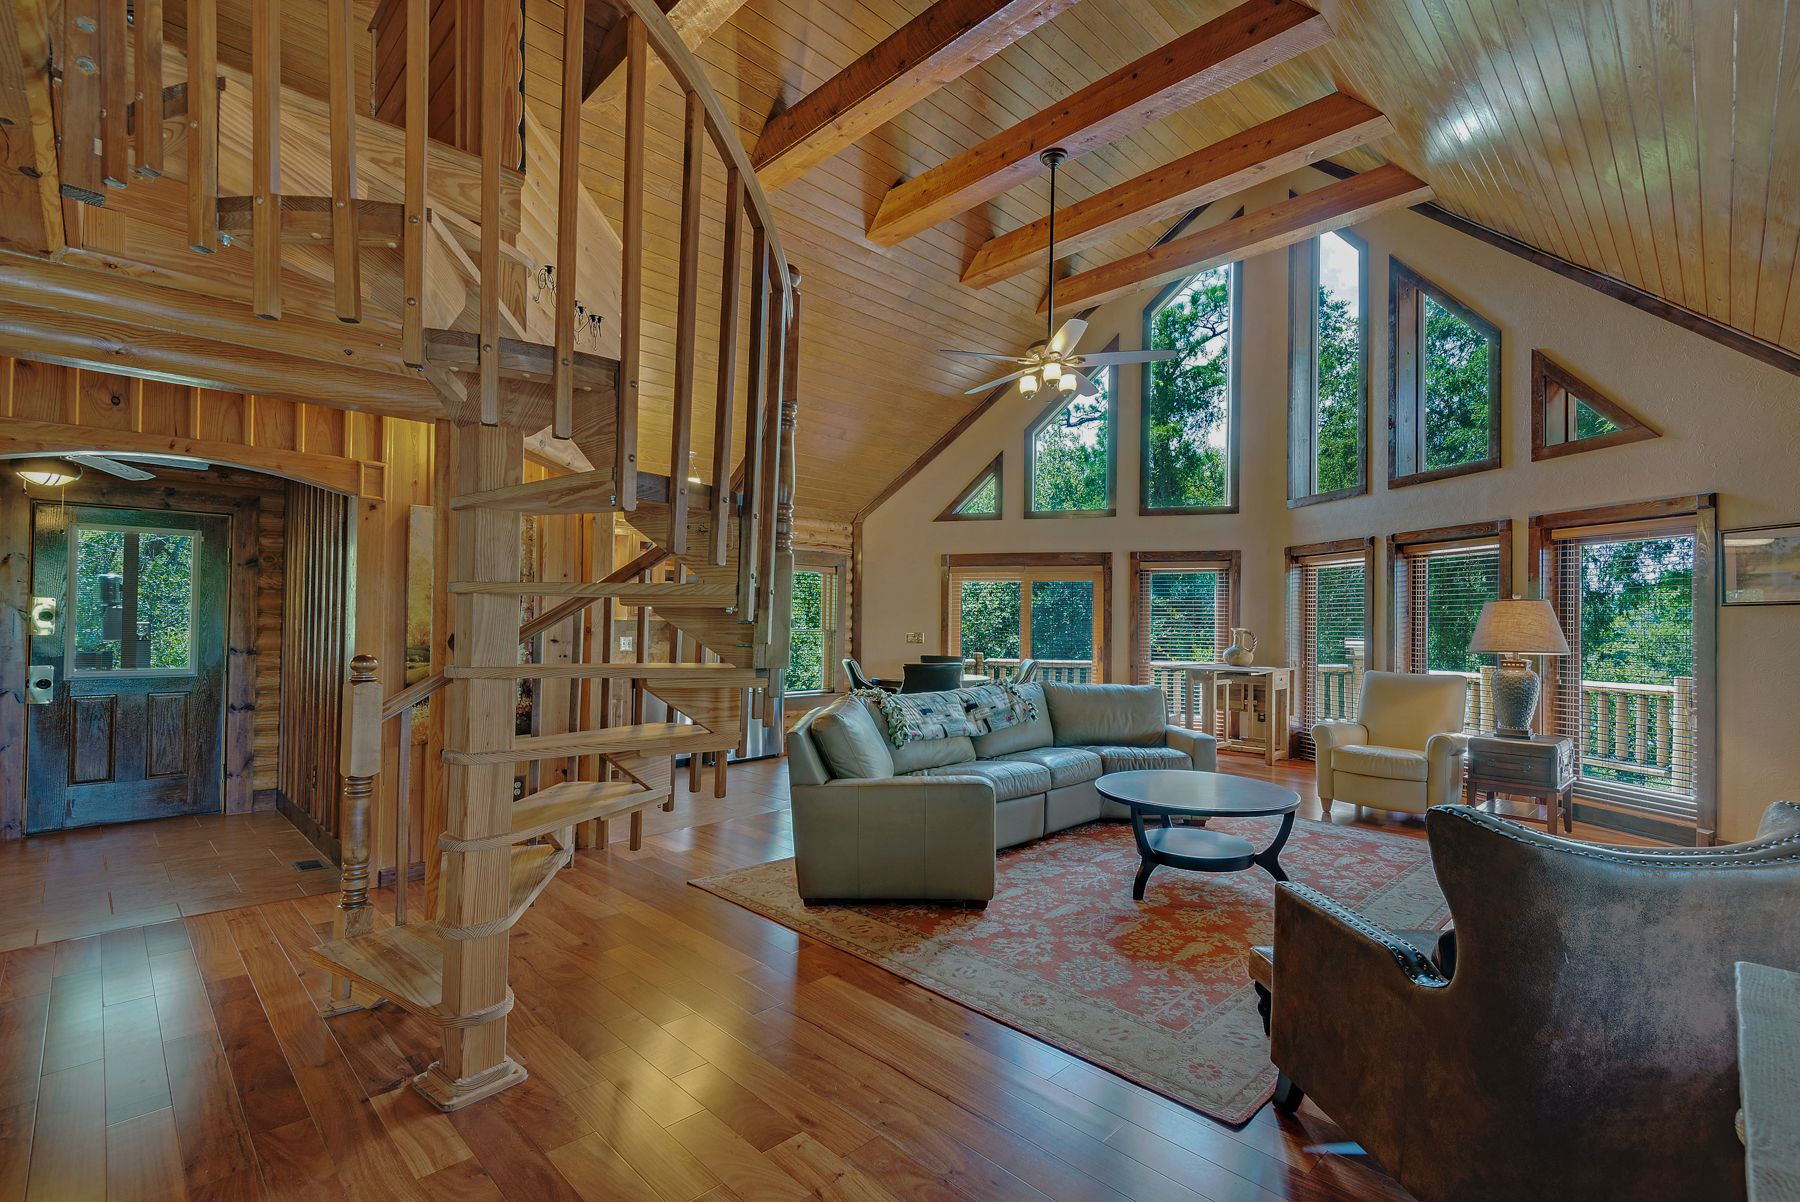 luxury realestate realtor home house vacation